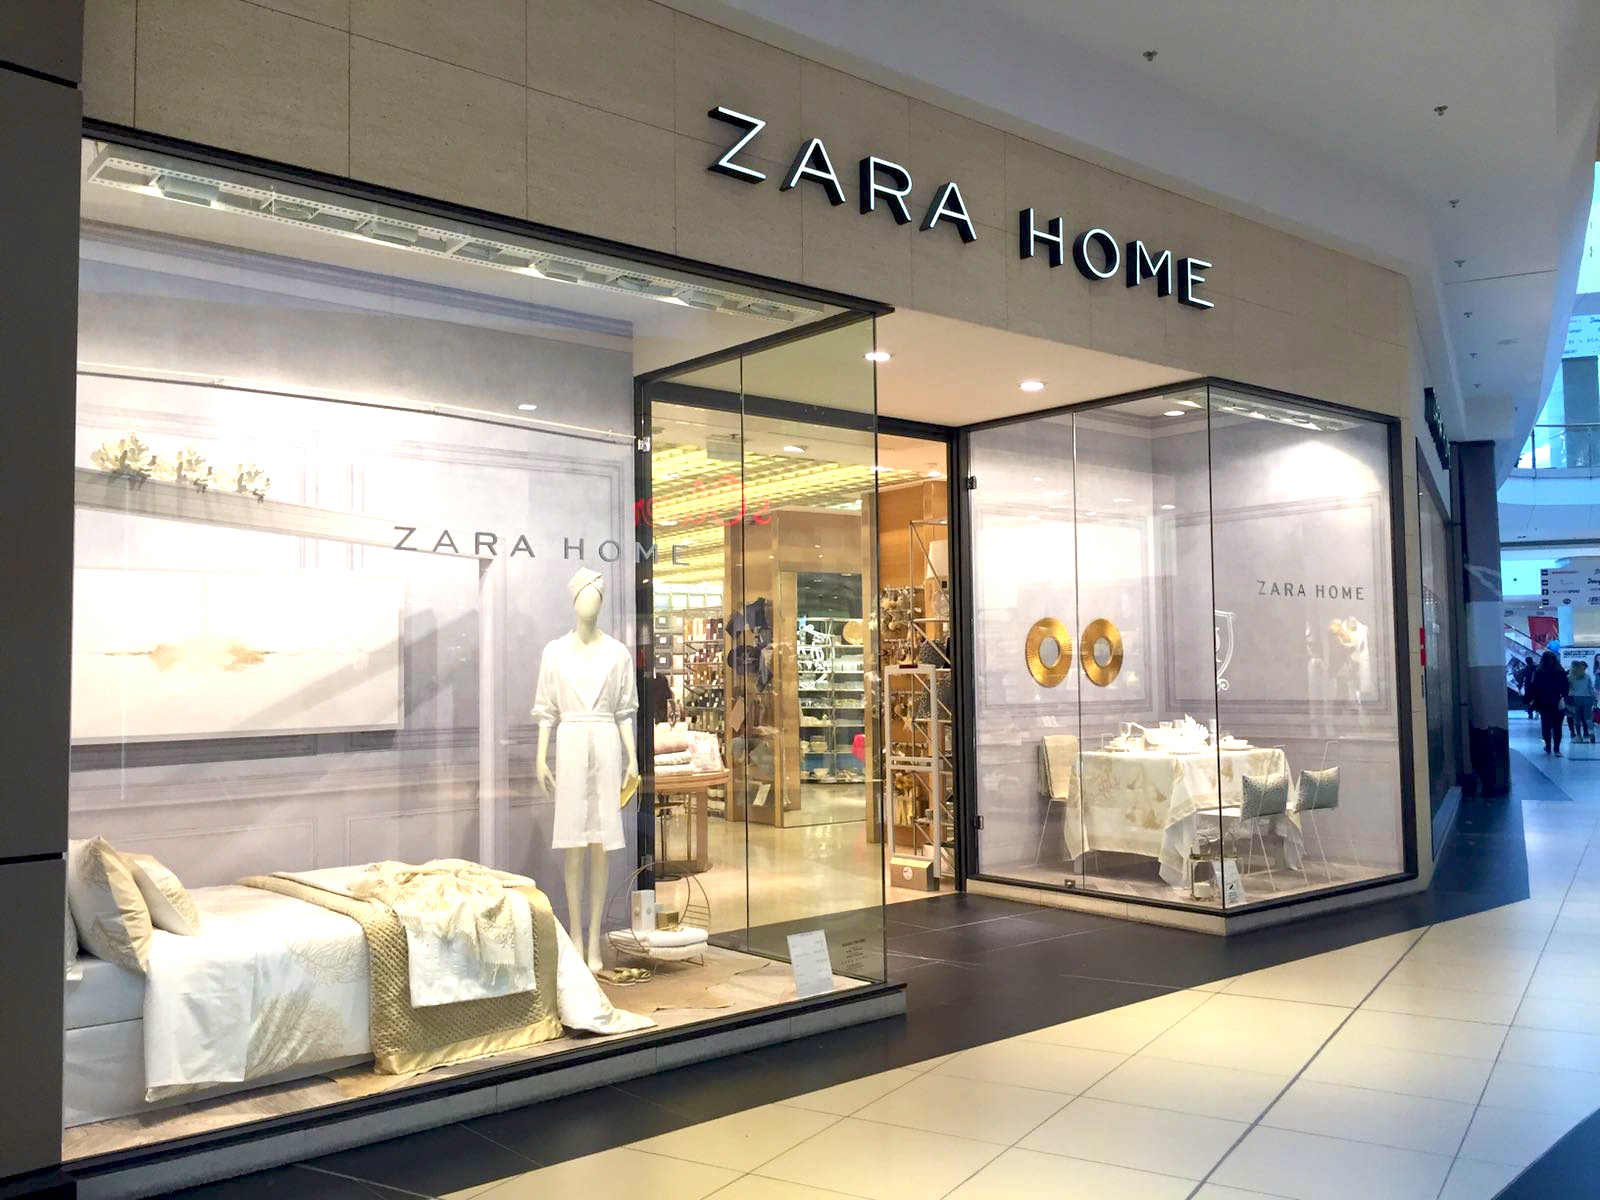 5 pretty decor finds from my zara home shopping spree for Home decor furniture stores